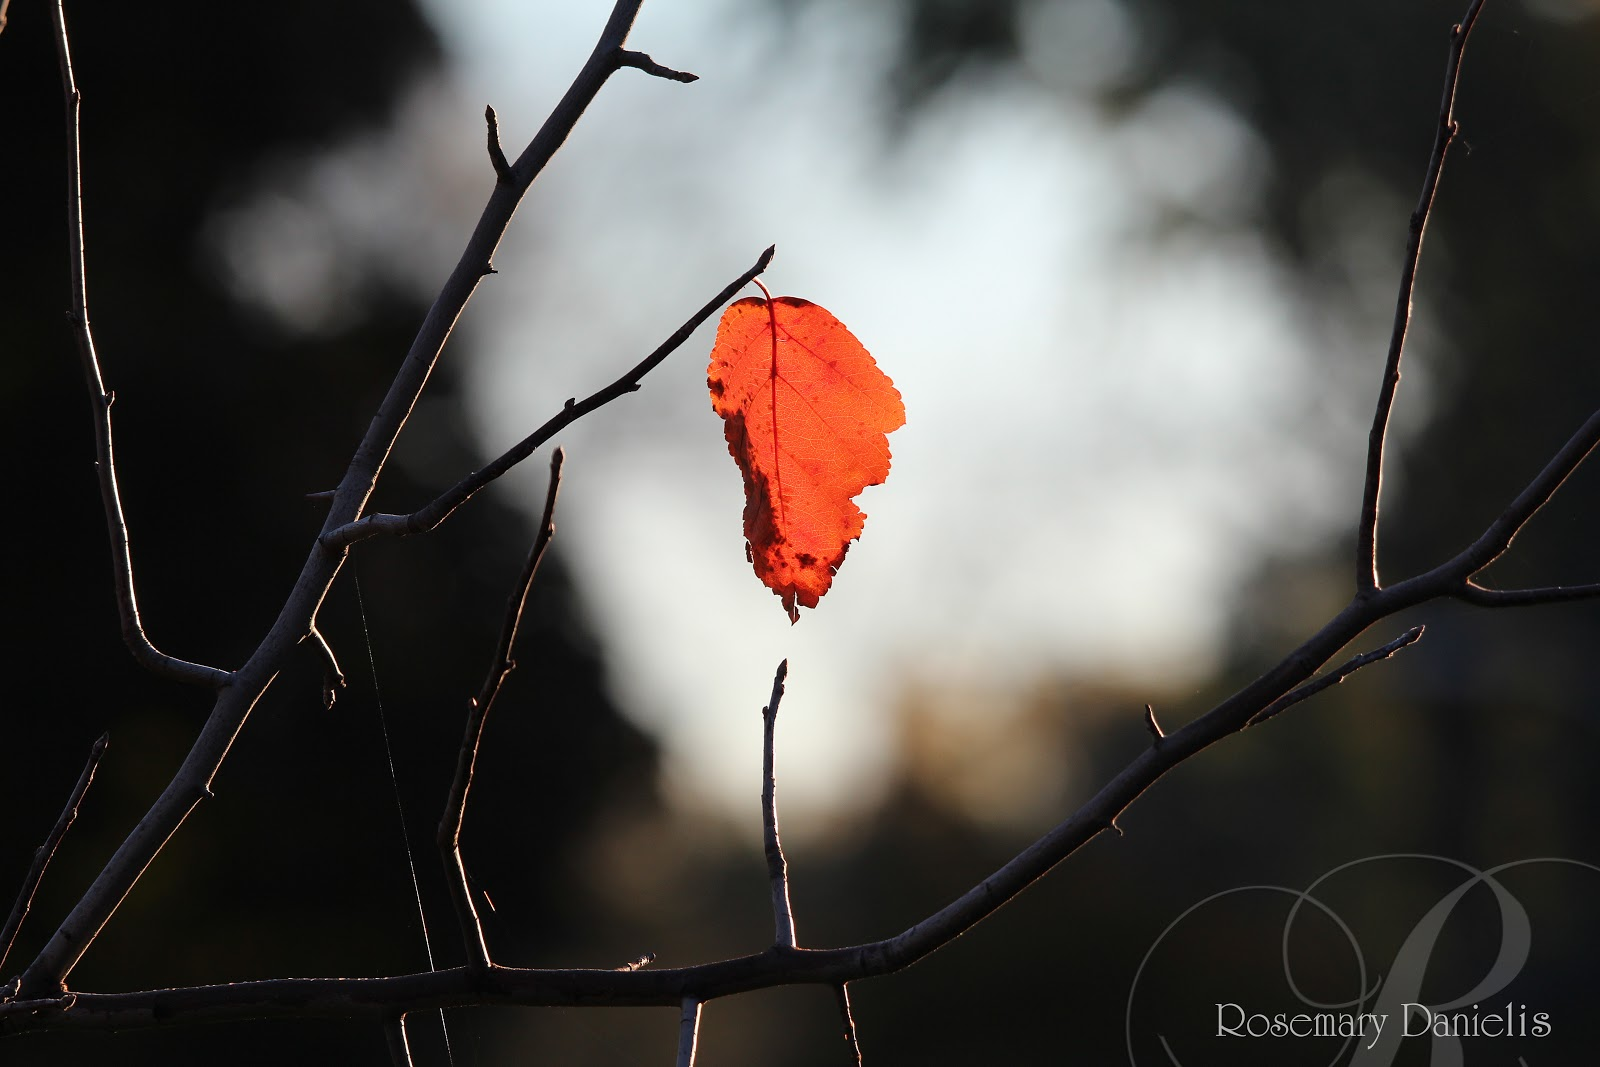 targonska stylistics the short story the last leaf by o henry judjing by the title i can say that the story can be about the last moments of somebody s life